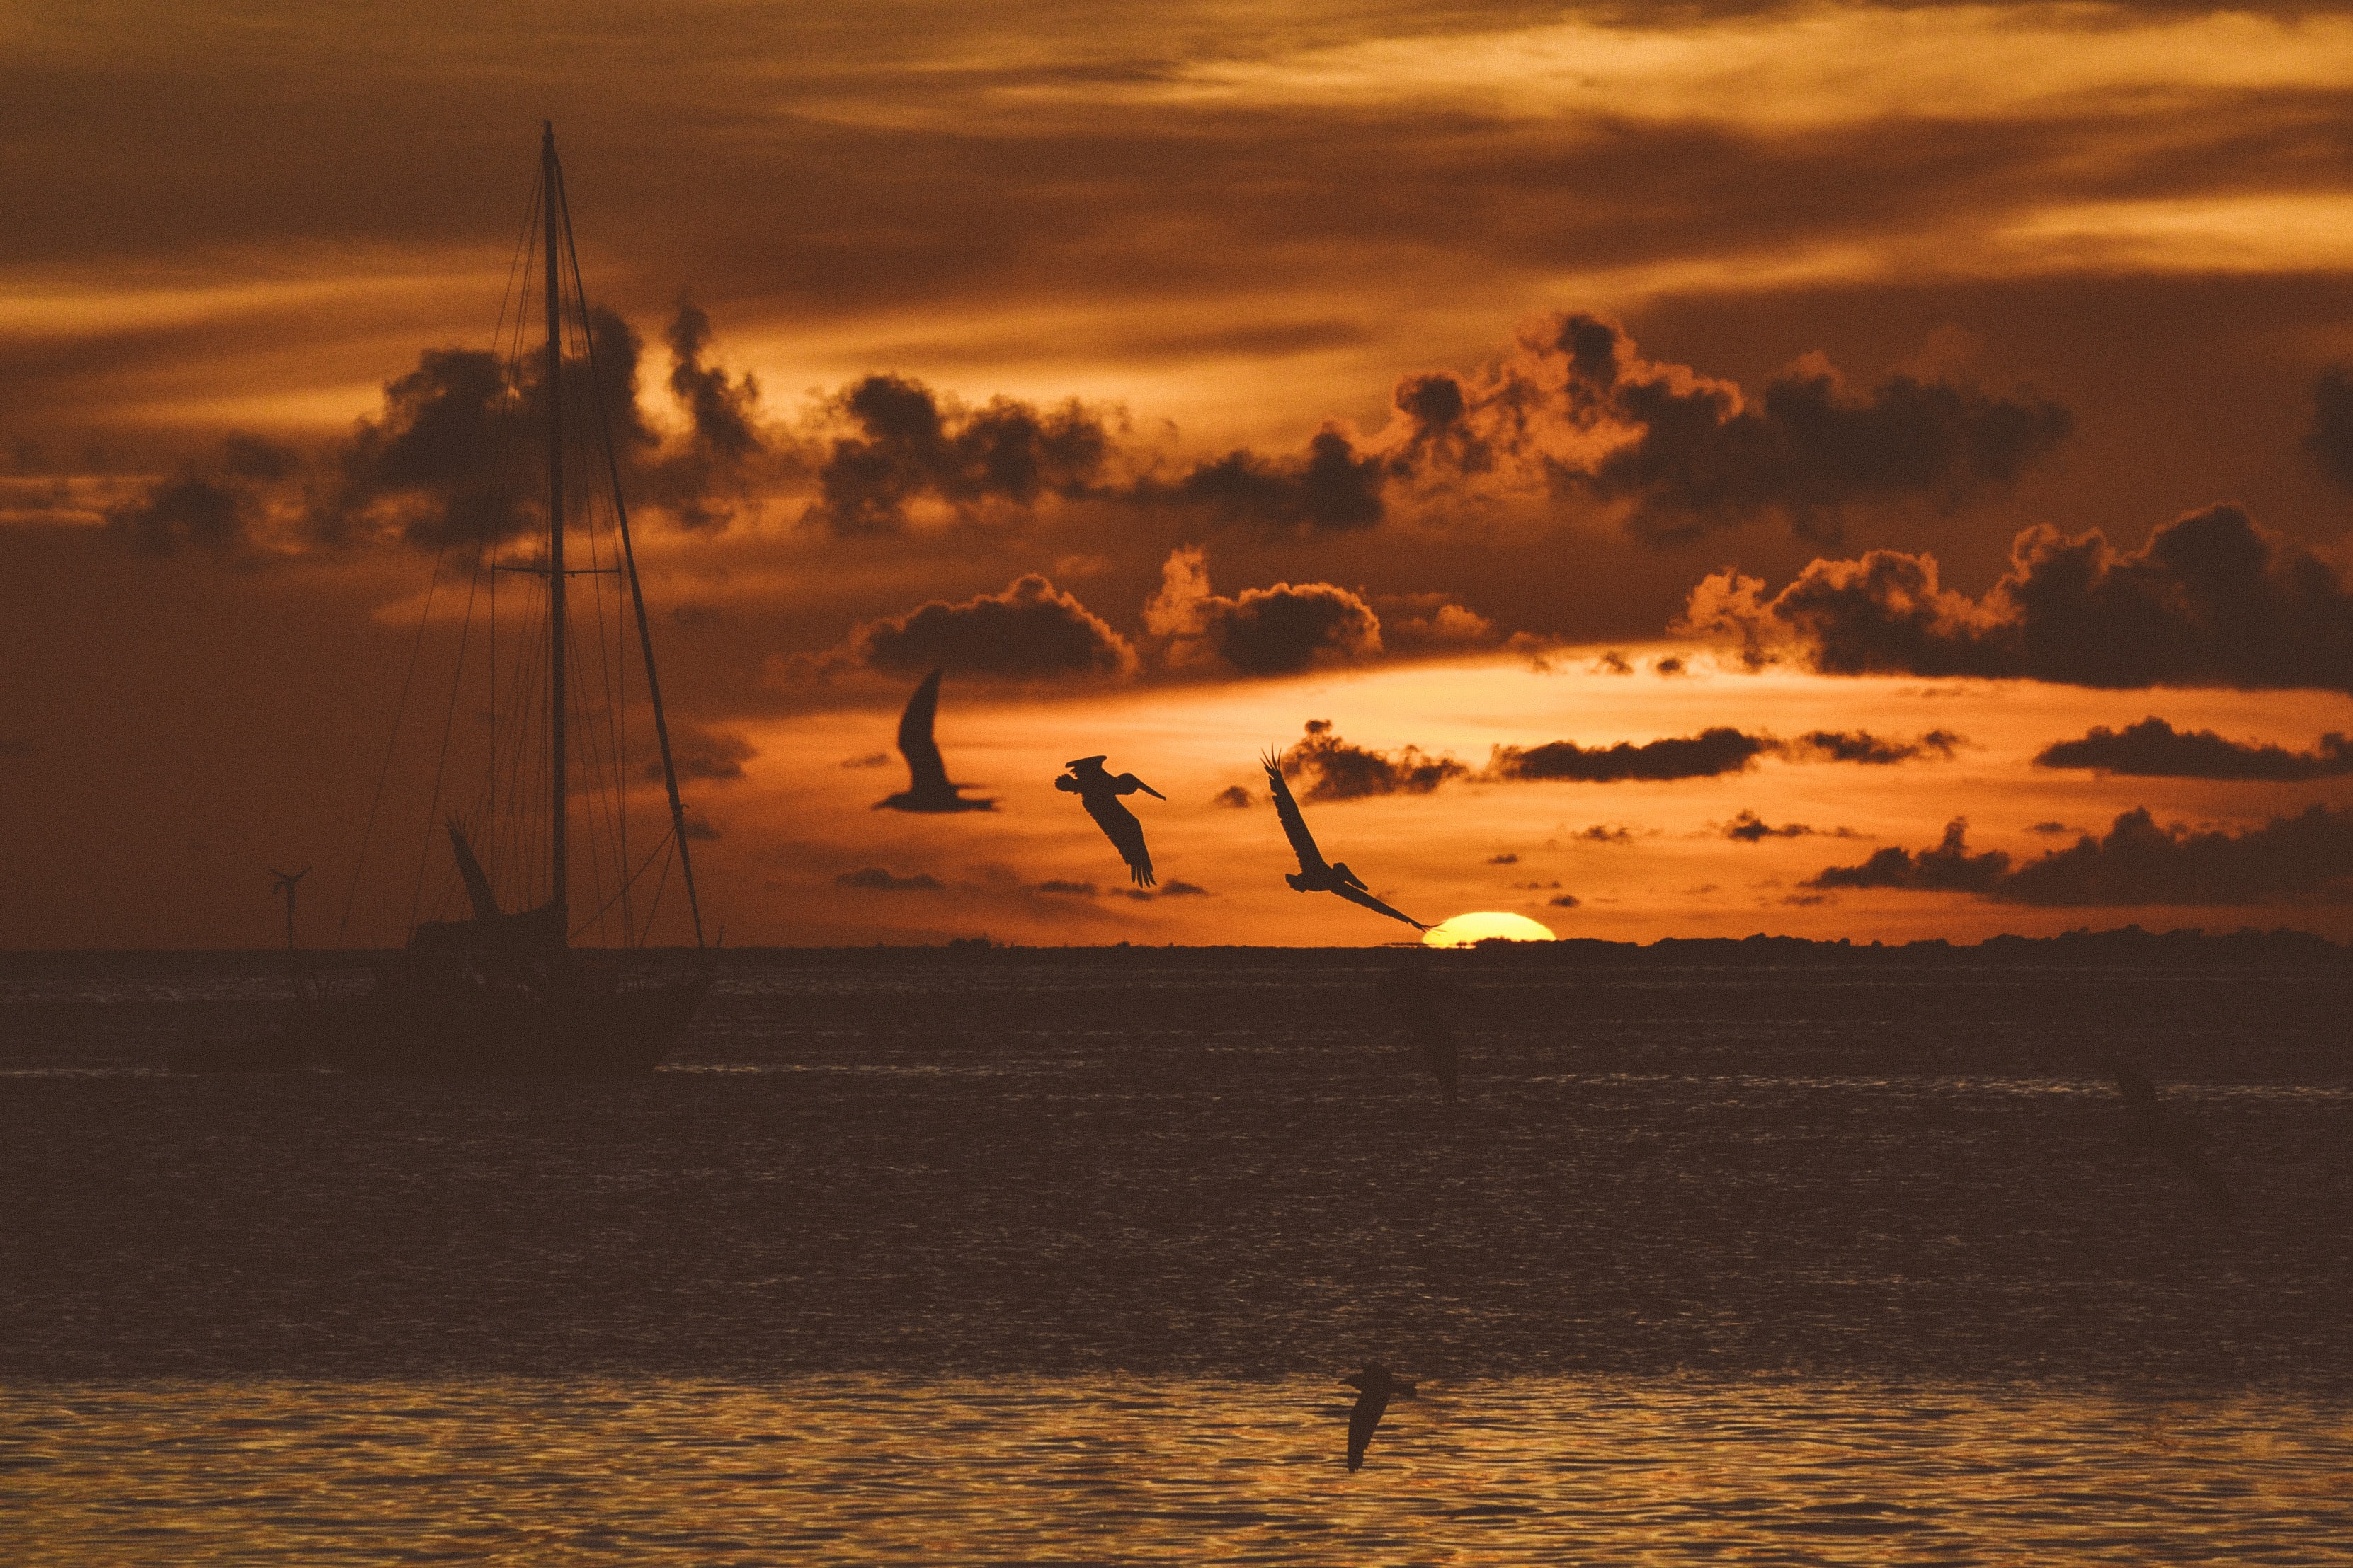 birds flying near boat during sunset